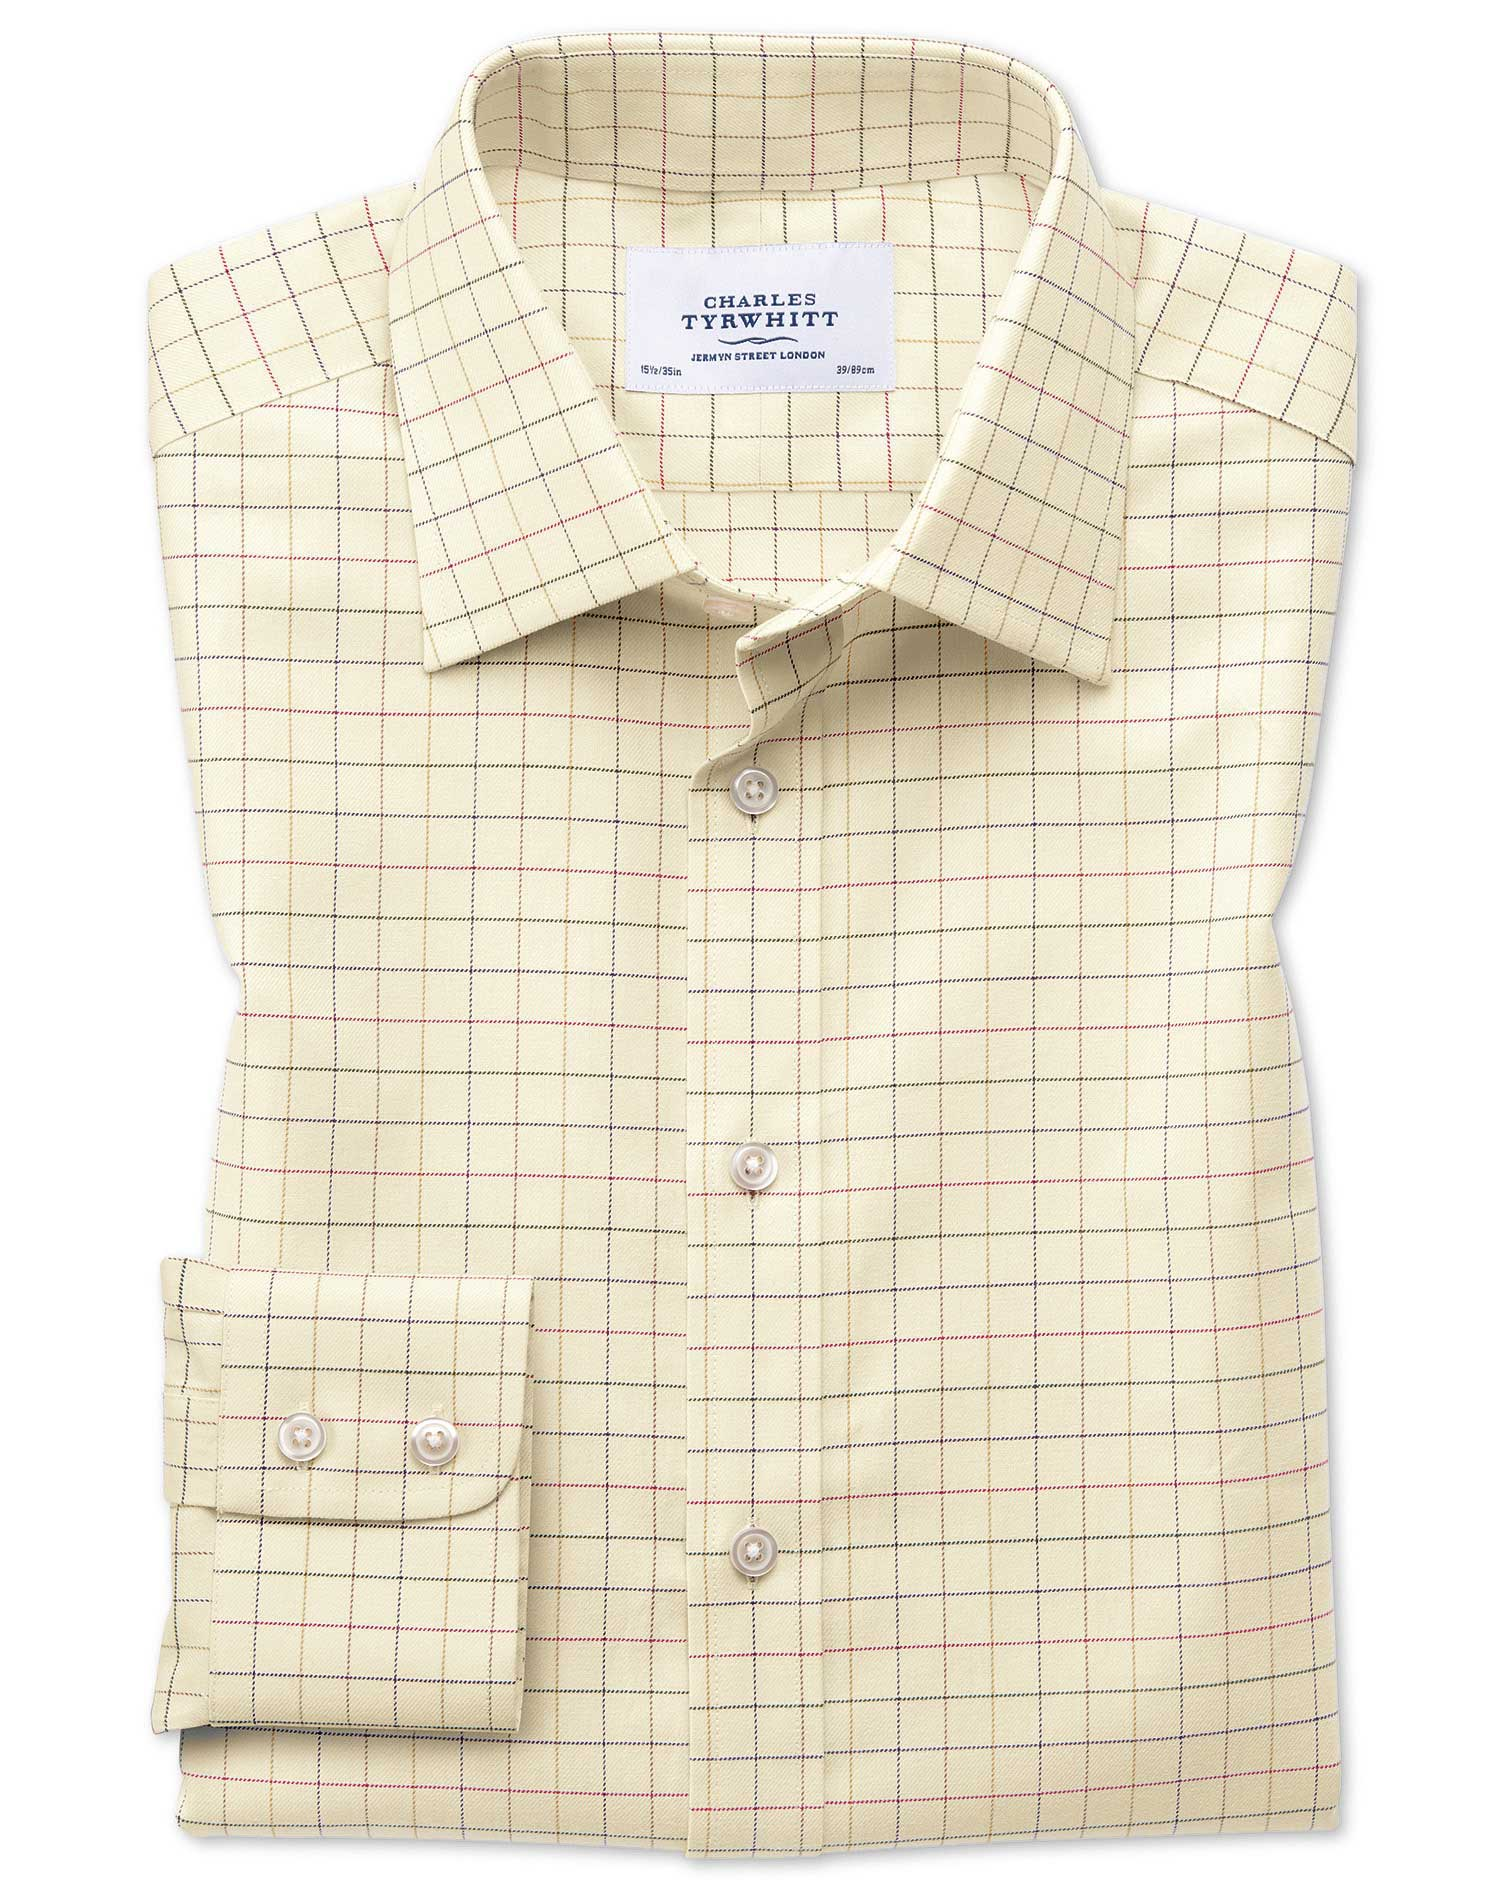 Classic Fit Country Check Multi Cotton Formal Shirt Single Cuff Size 17.5/34 by Charles Tyrwhitt